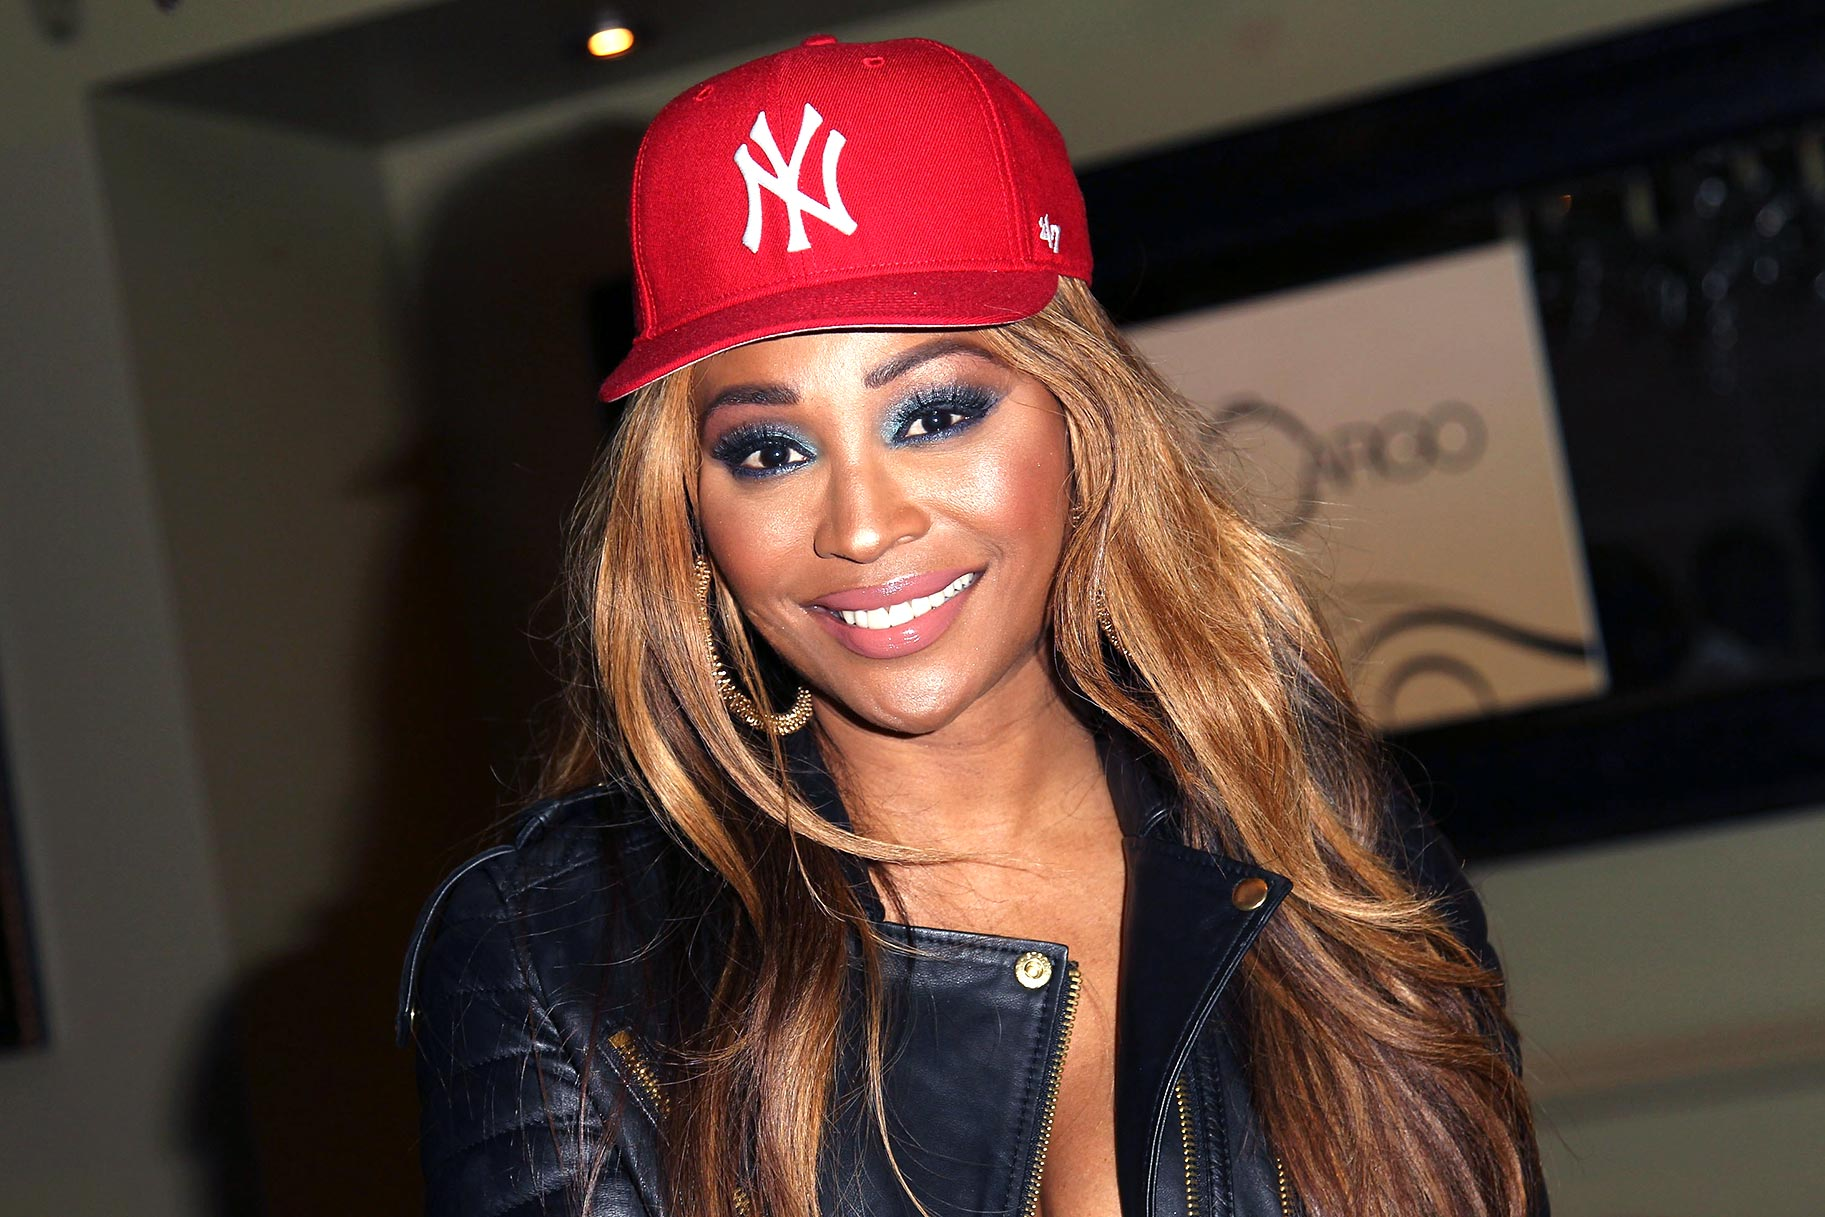 Cynthia Bailey Shares A Gorgeous Photo With Porsha WIlliams' Mom, Dyanne - Fans Claim She Looks Just Like Beyonce's Mom, Tina Knowles